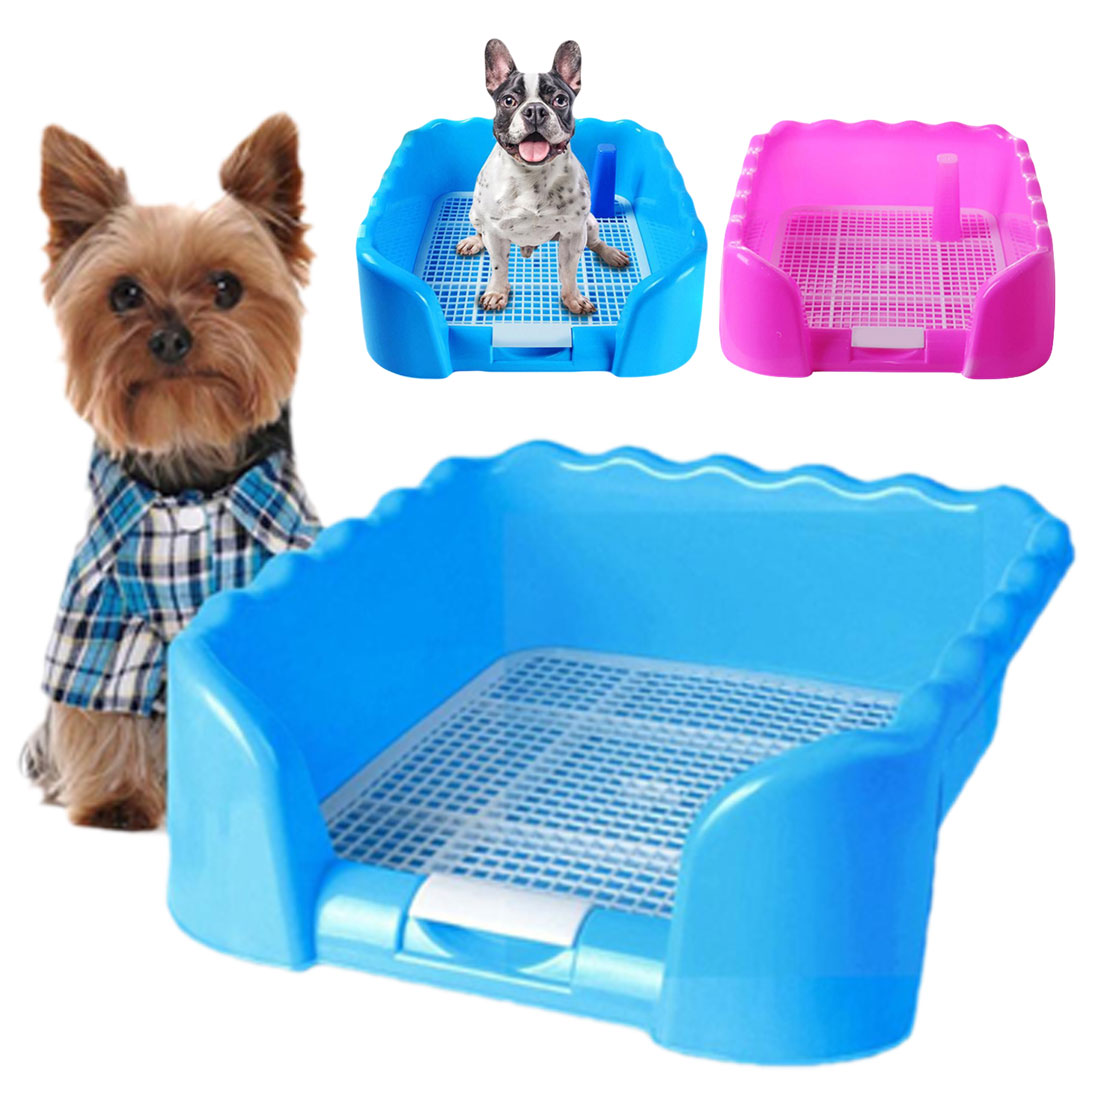 Portable Pet Dog Cat Toilet With Fence Training Pad Holder Indoor Cleaning Potty Plastic Puppy Toilet Tray